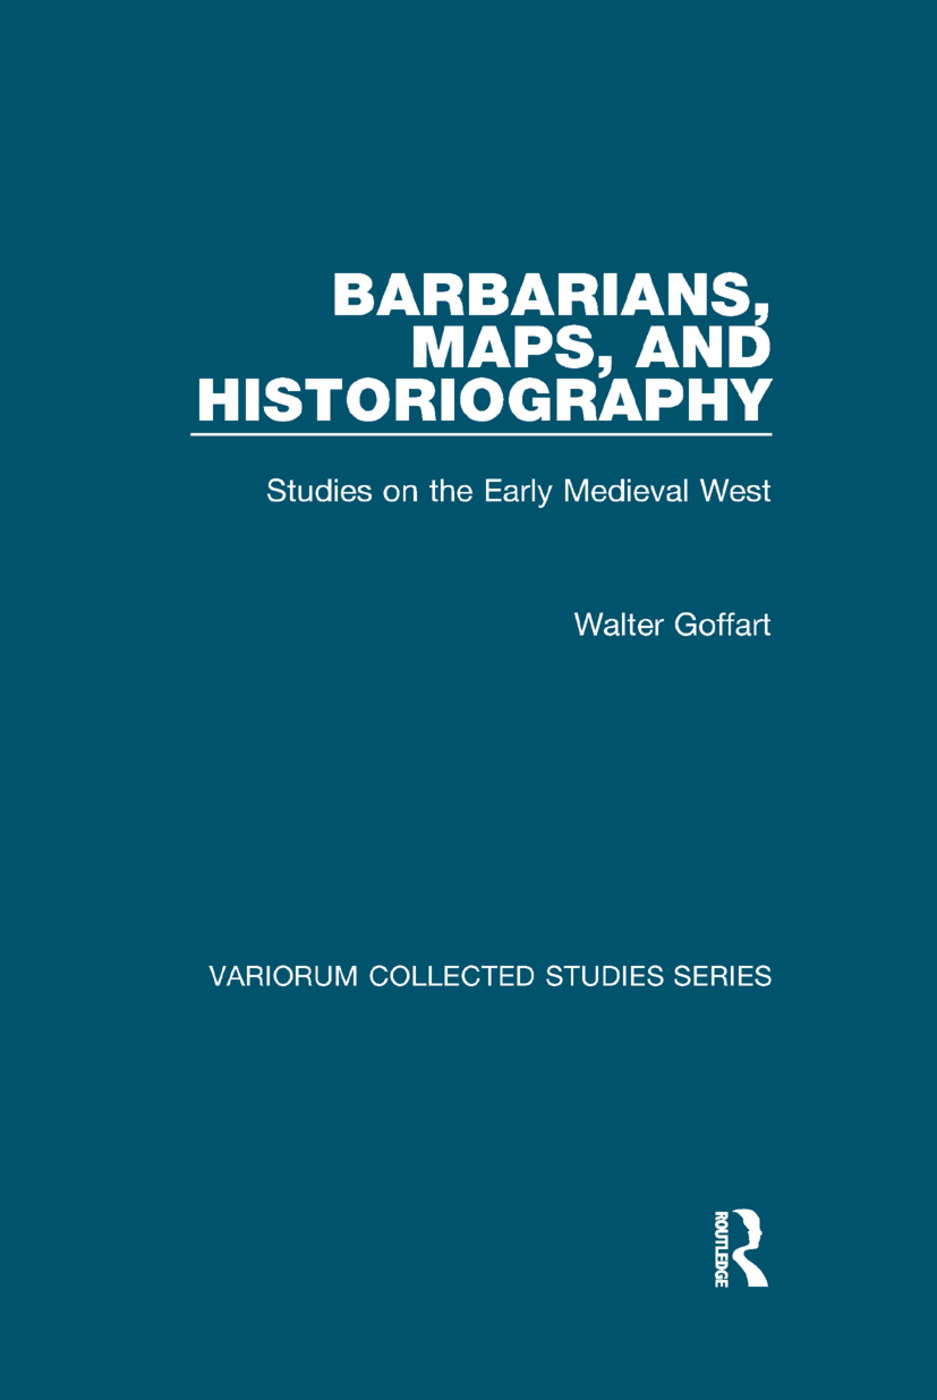 Barbarians, Maps, and Historiography: Studies on the Early Medieval West book cover